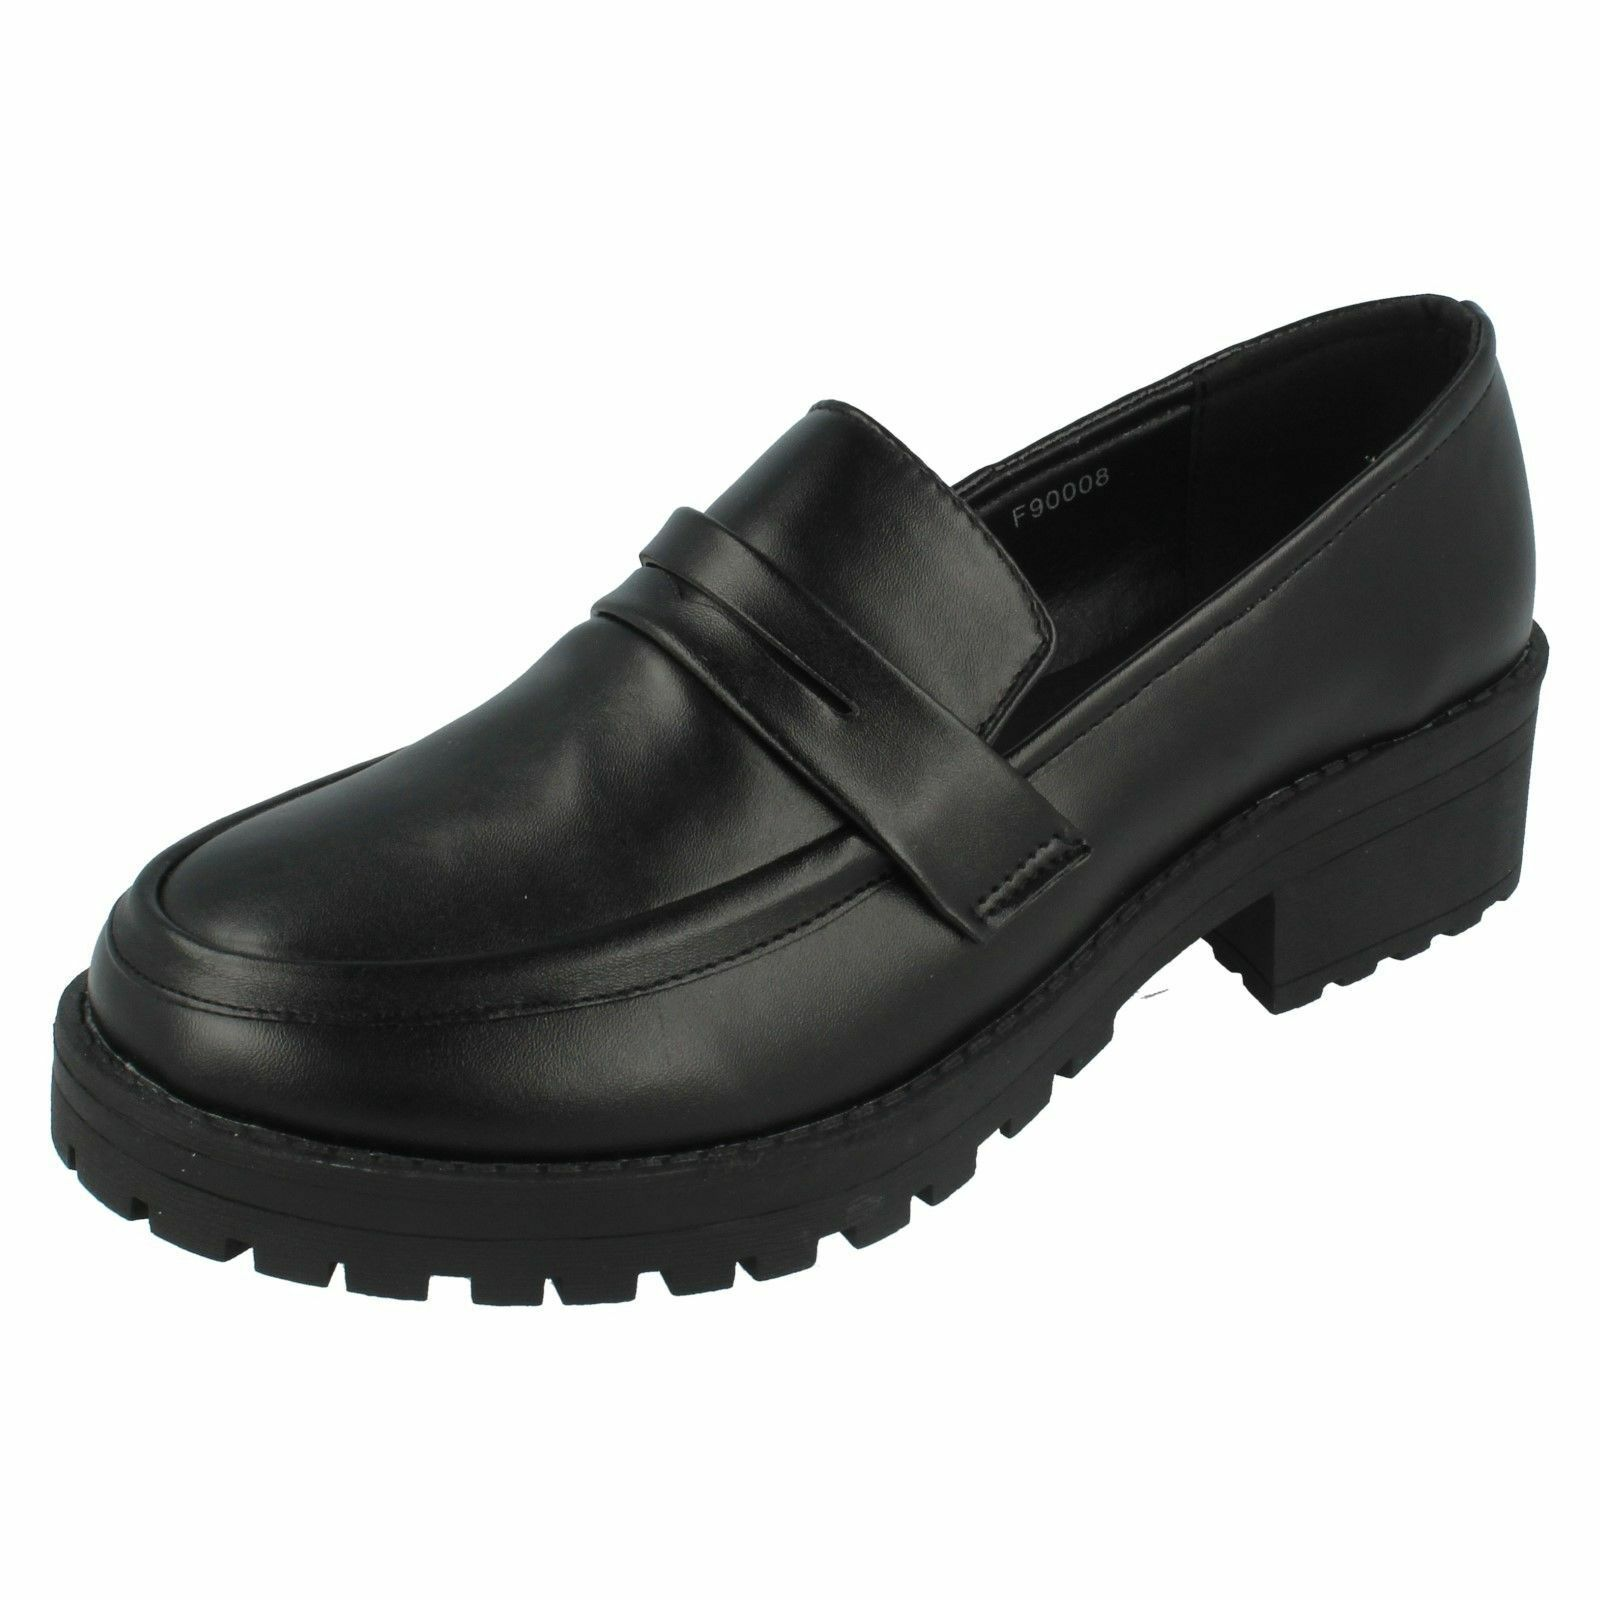 Ladies Black Spot On Slip On Shoes F90008